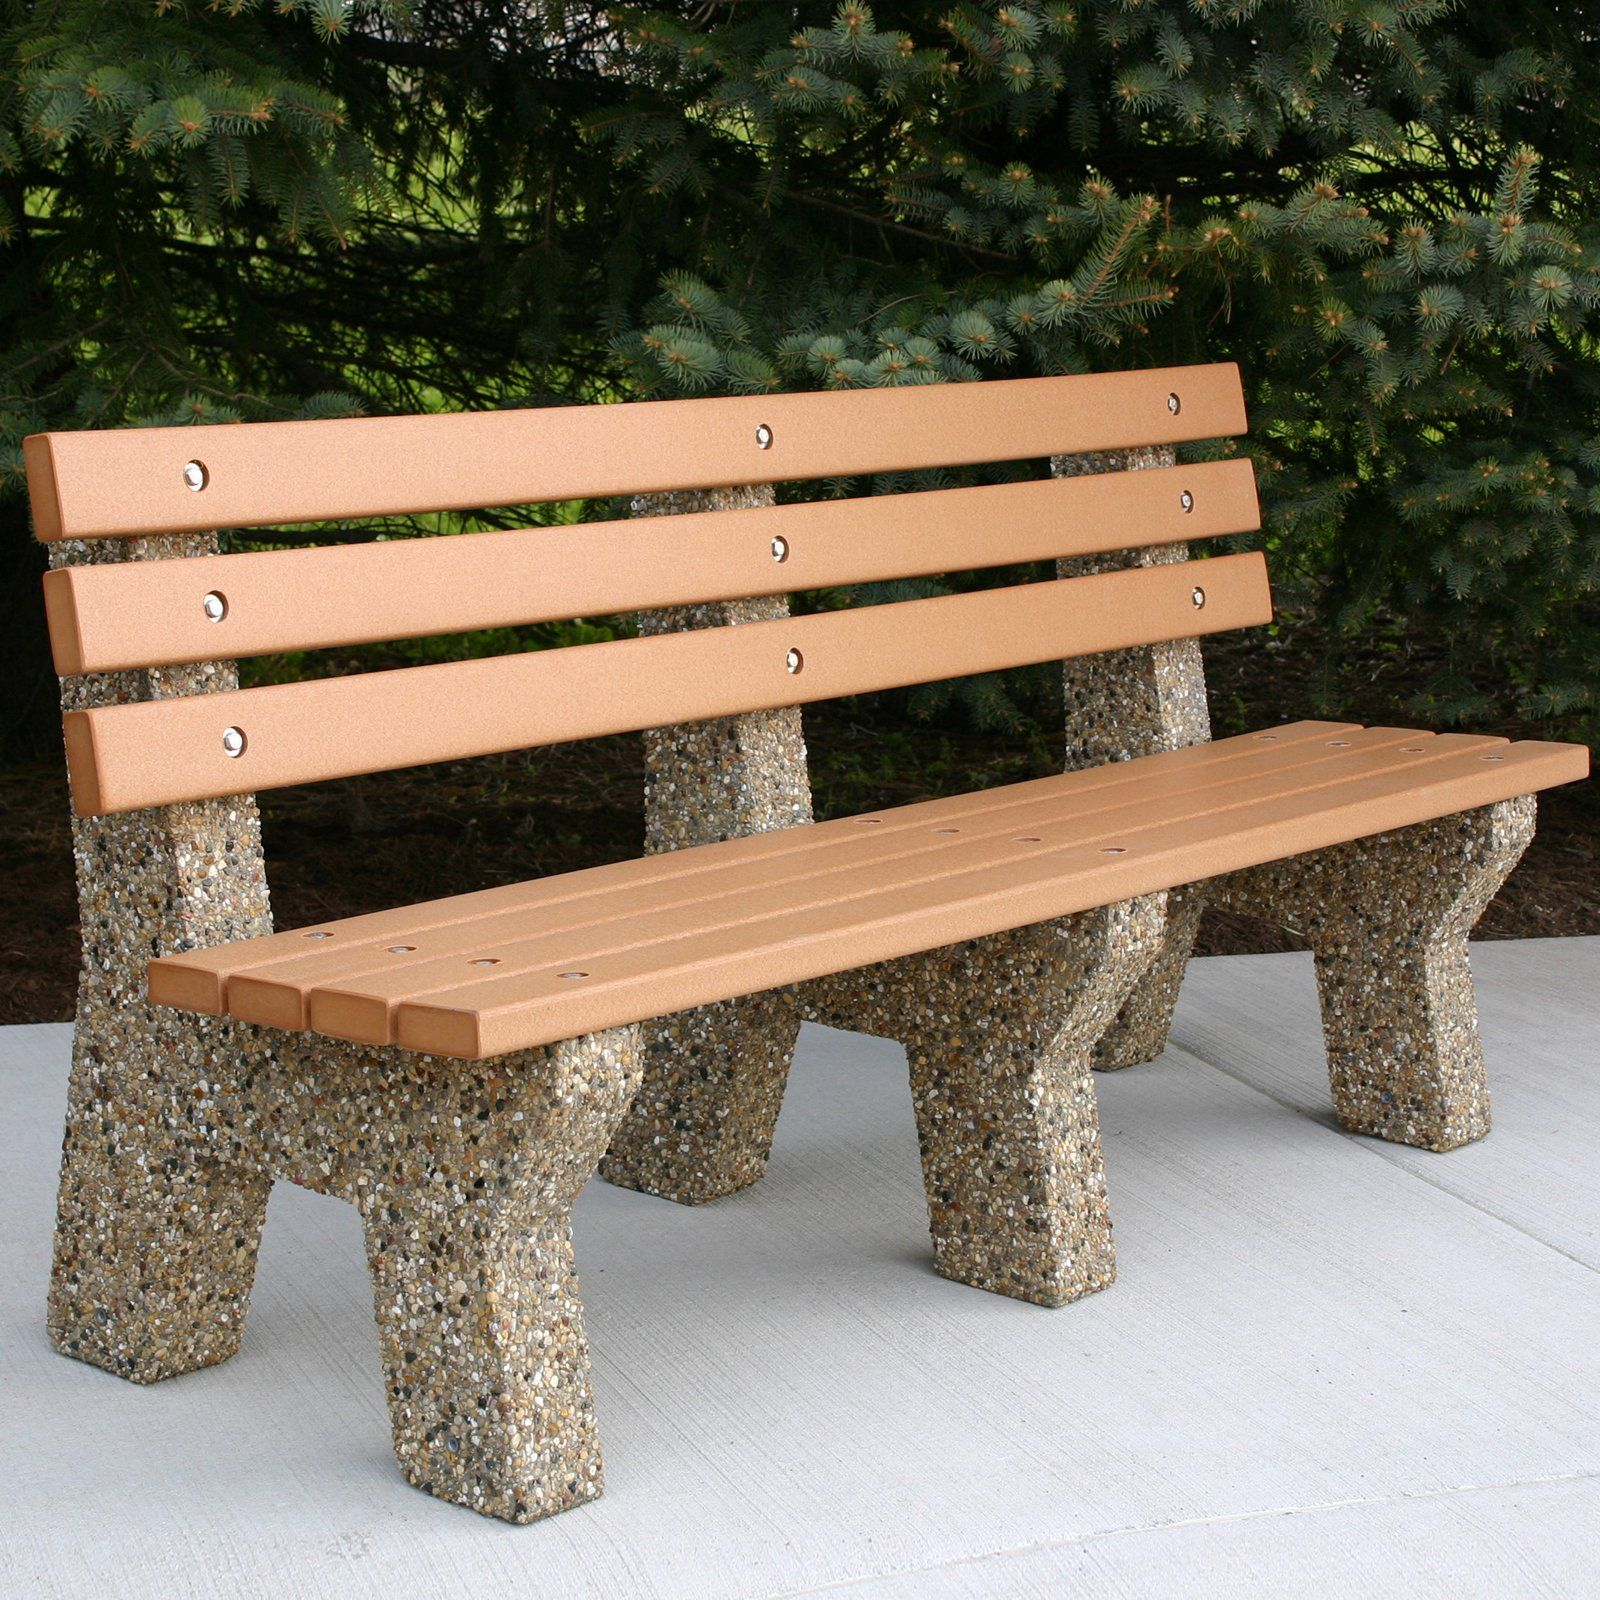 Modern Concrete Benches: Modern Bench Outdoor Inspiration (With Images)